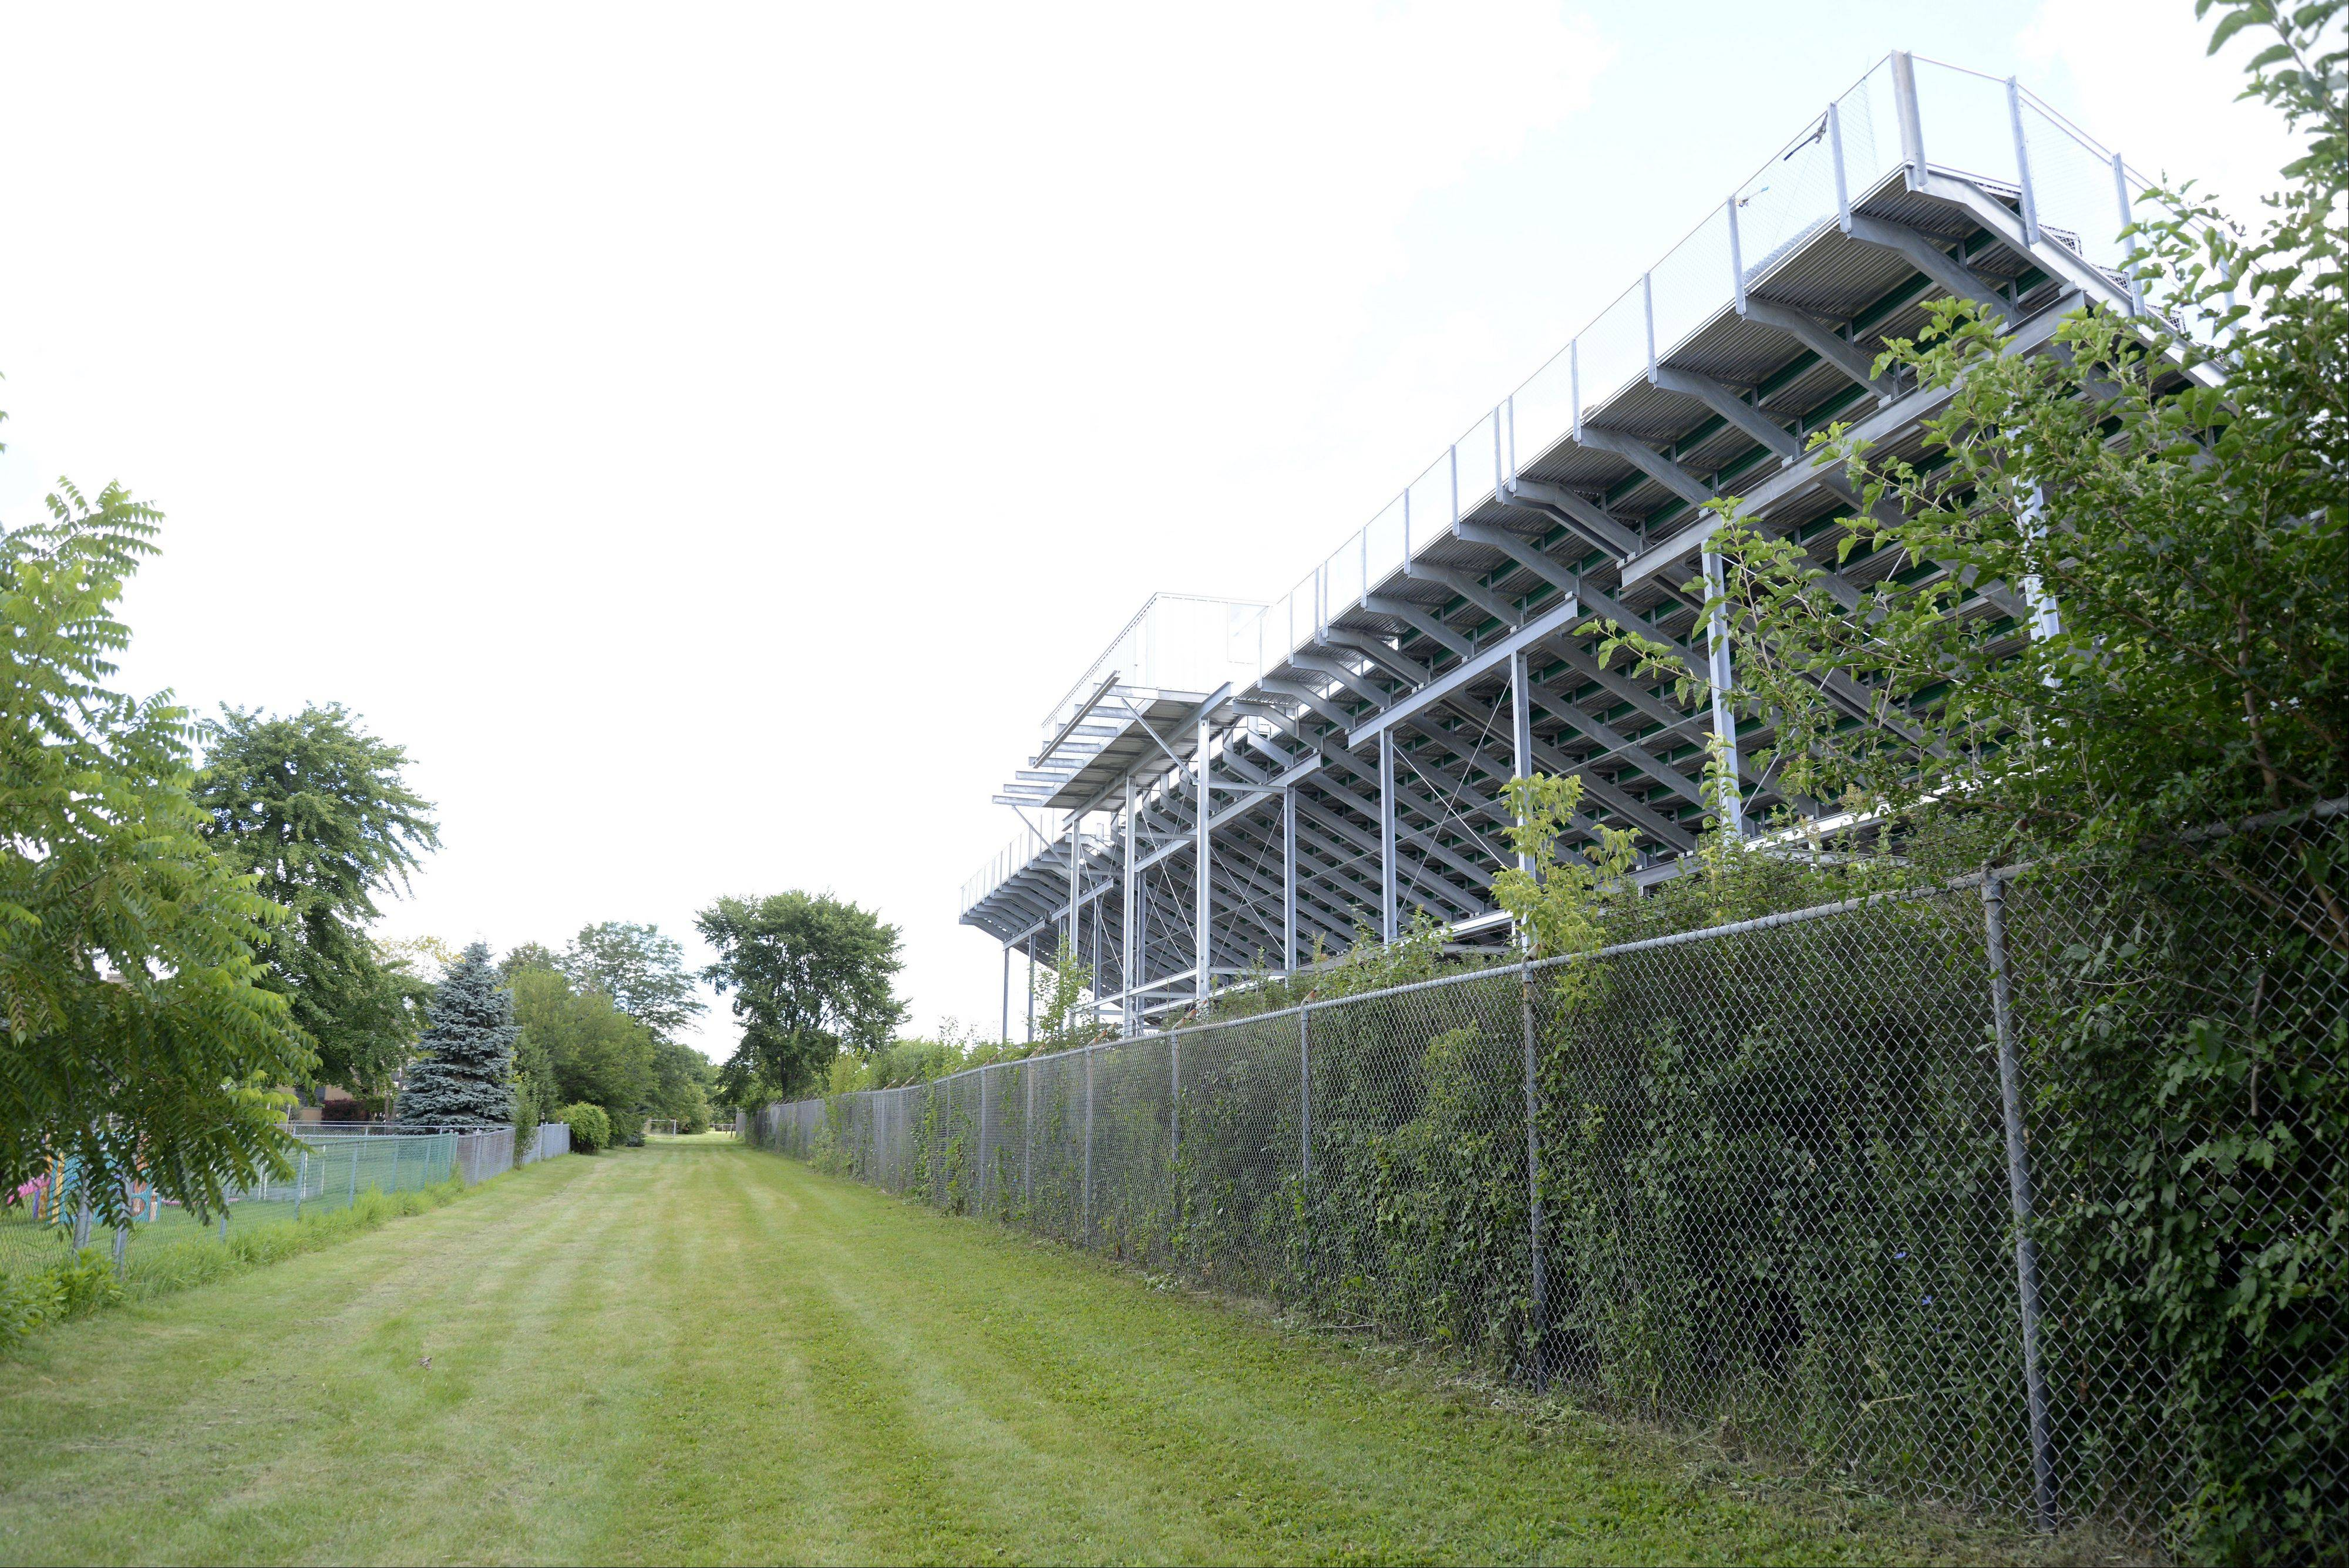 Crystal Lake South High School installed bleachers on the west side of the football field, and three residents of Amberwood Drive -- including McHenry County State's Attorney Louis Bianchi -- have sued the school district.